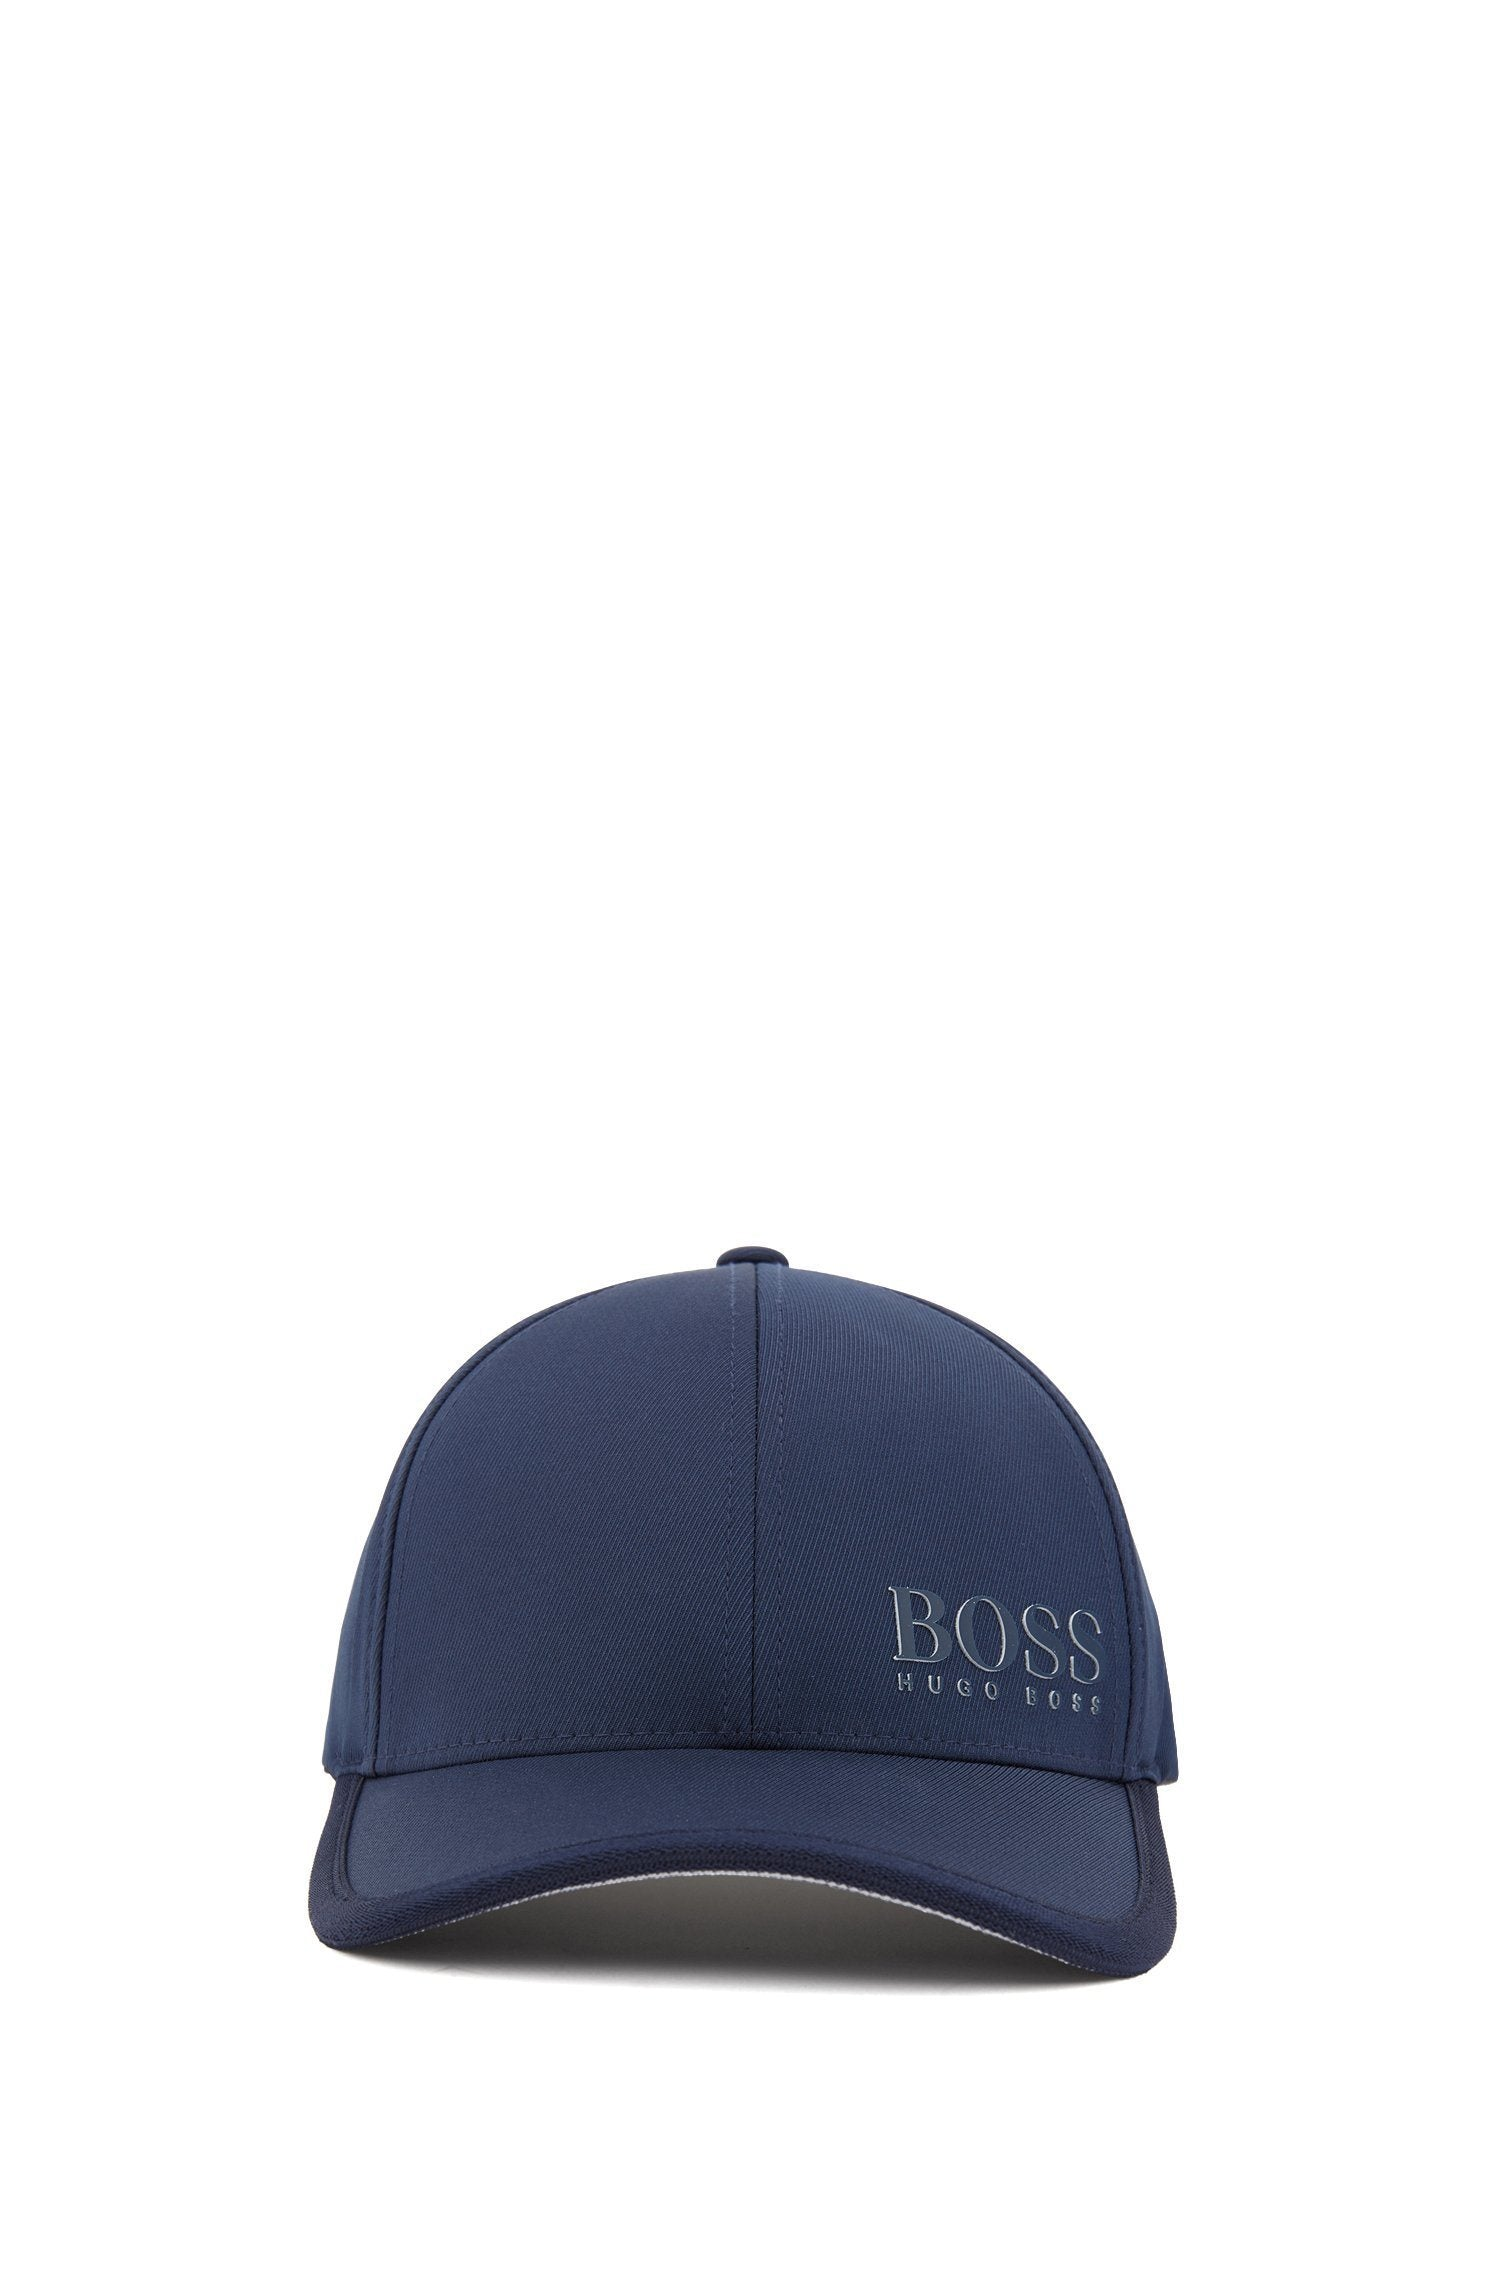 BOSS Athleisure Technical Stretch Twill Cap With 3D Logo in Navy